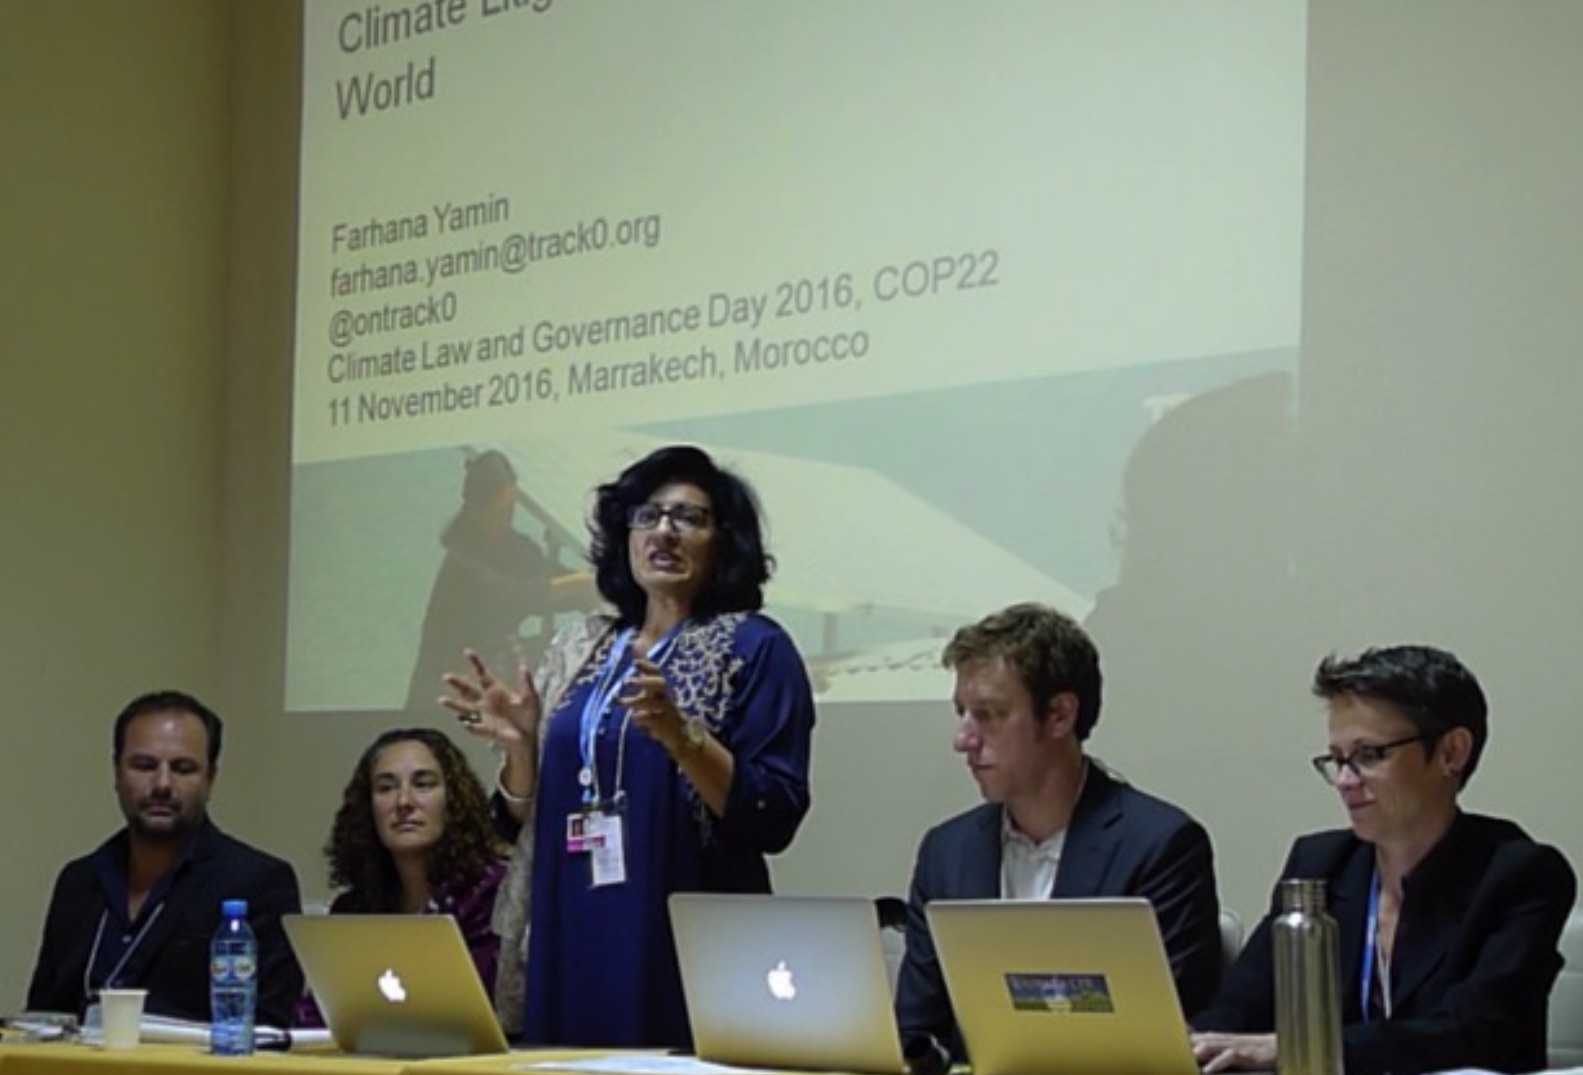 Expert Roundtable: Role of Climate Litigation in the Post-Paris World